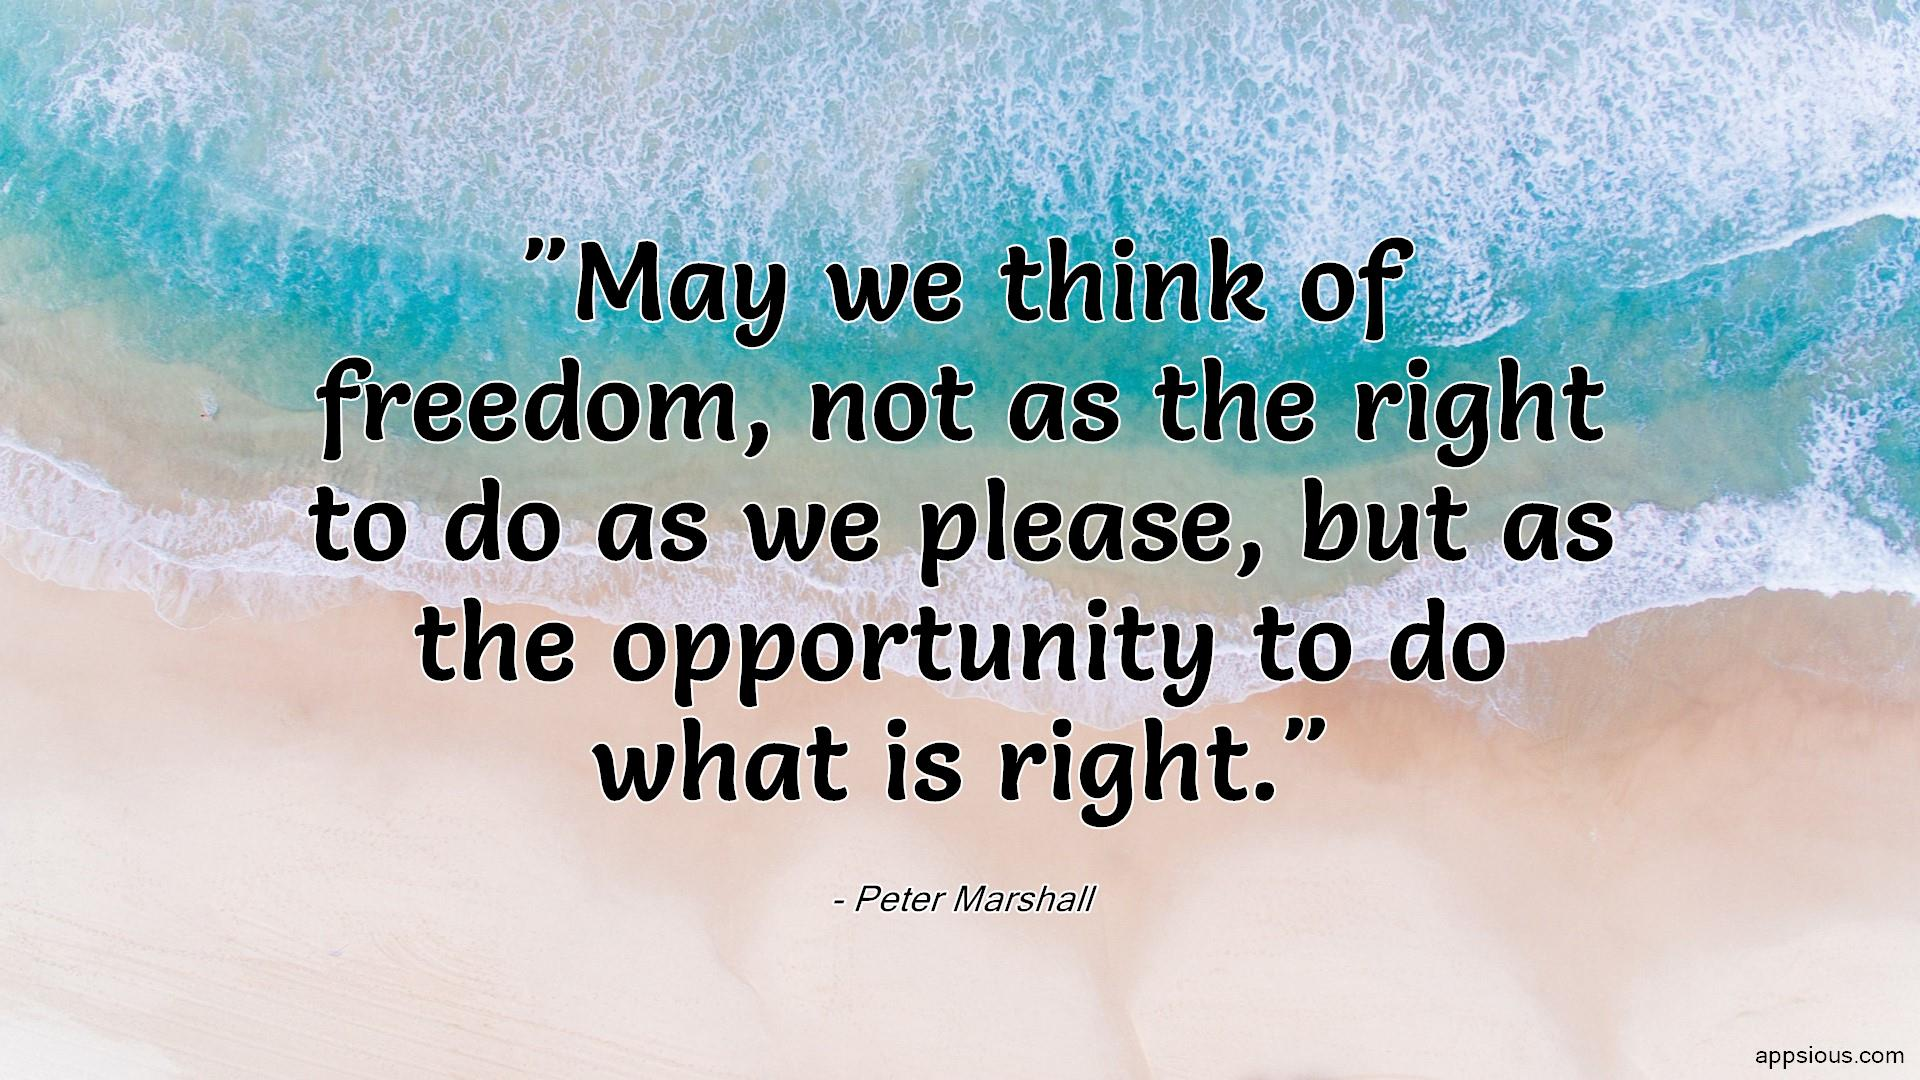 May we think of freedom, not as the right to do as we please, but as the opportunity to do what is right.